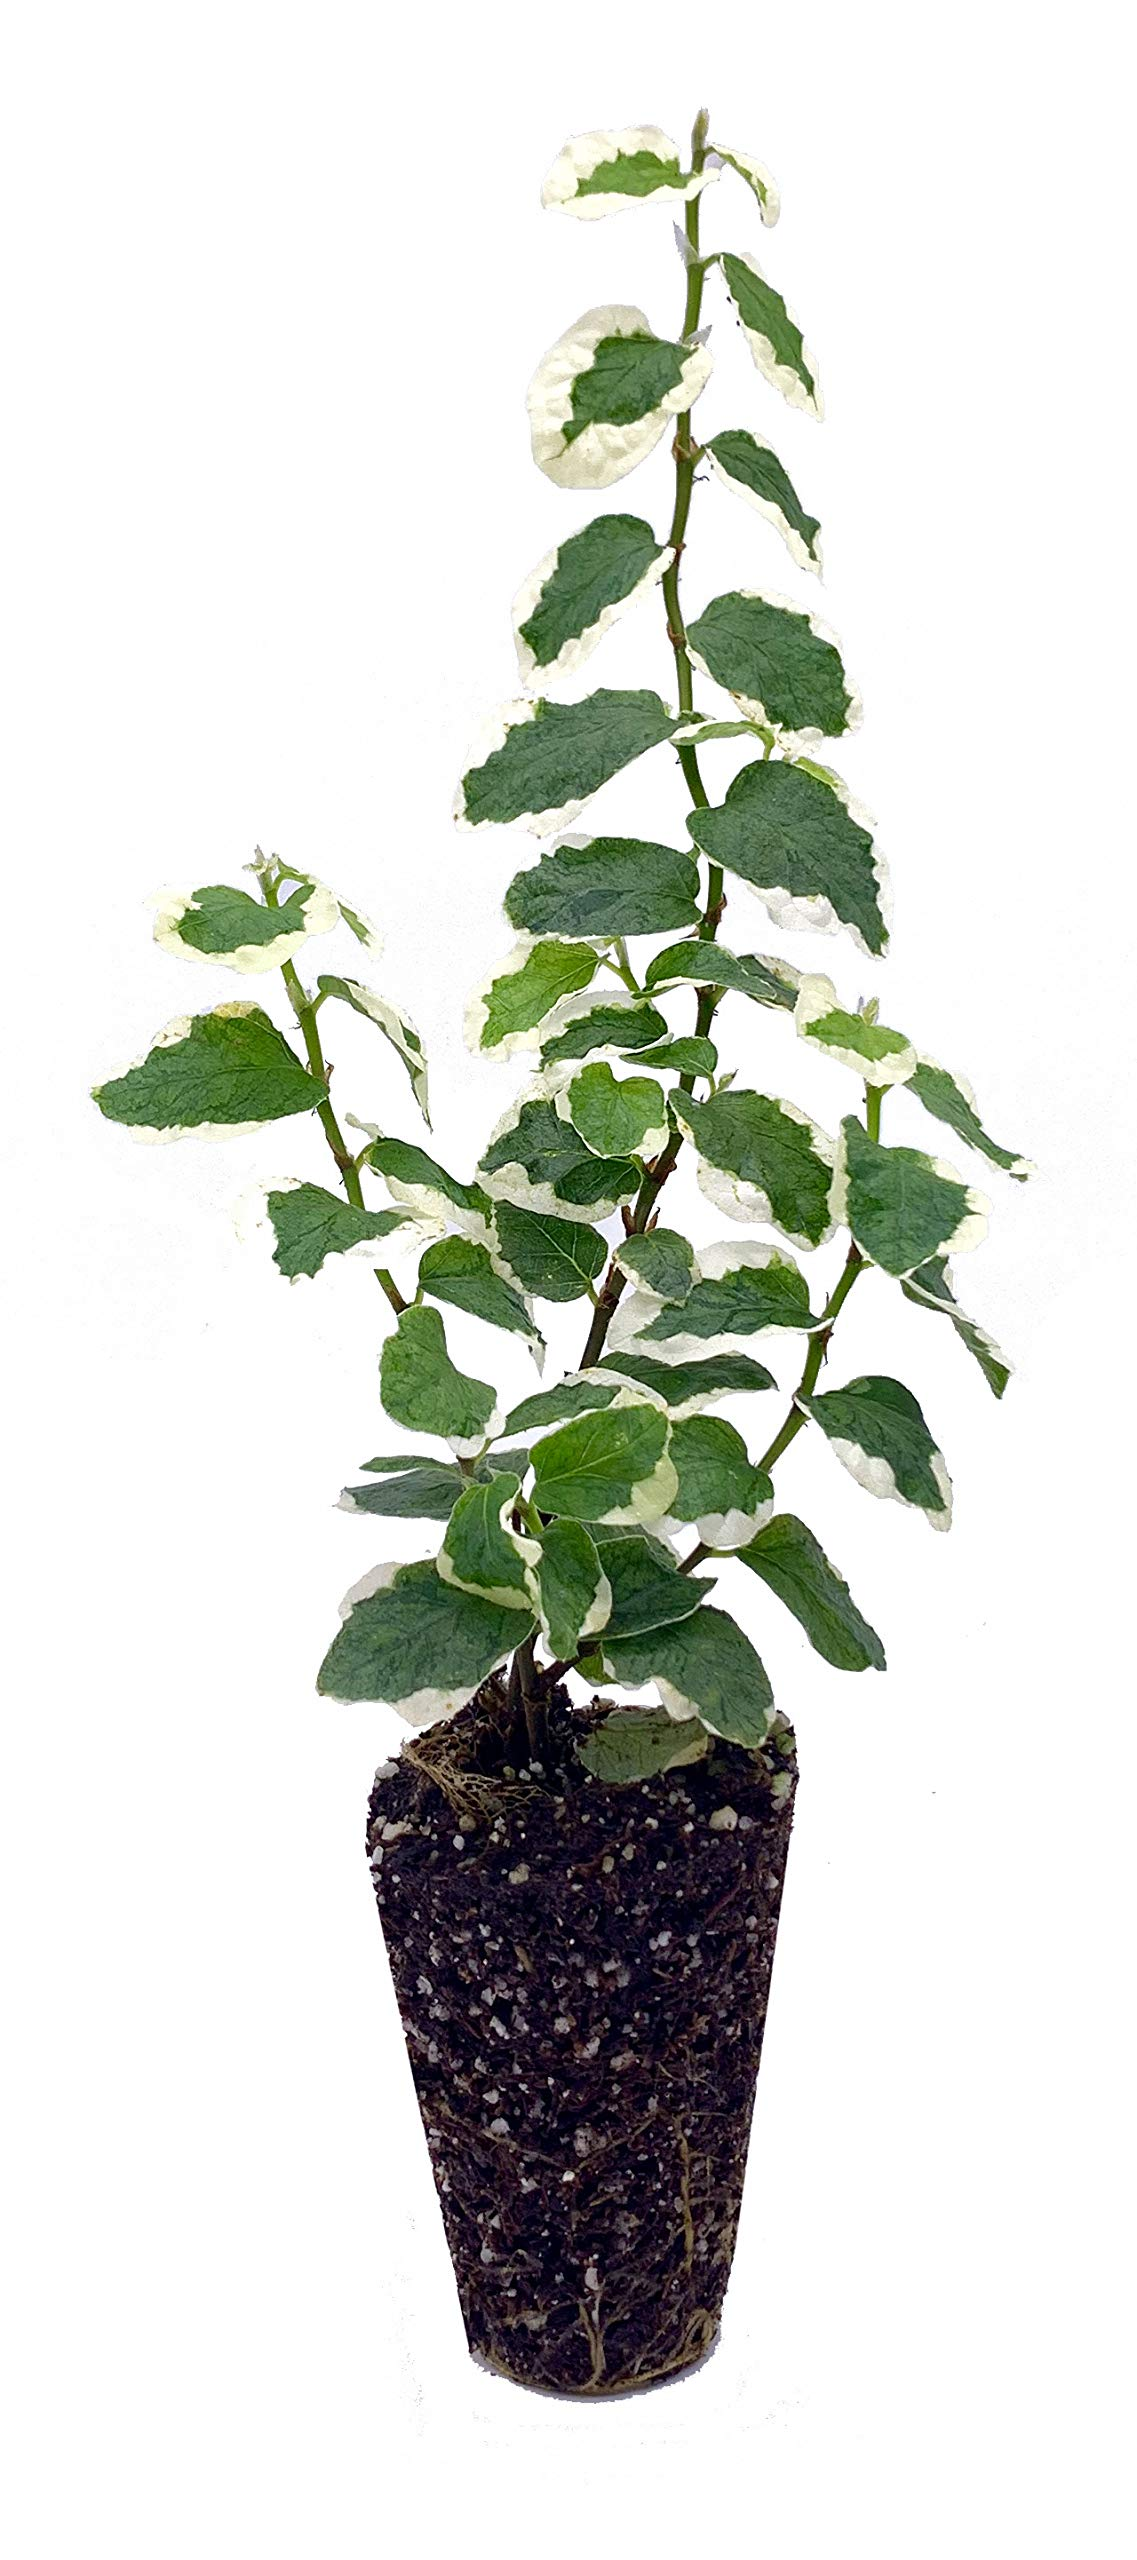 Variegated Creeping Fig Vine - Ficus Pumila Variegata - 10 Live Fully Rooted 2 Inch Plants - Climbing Ivy